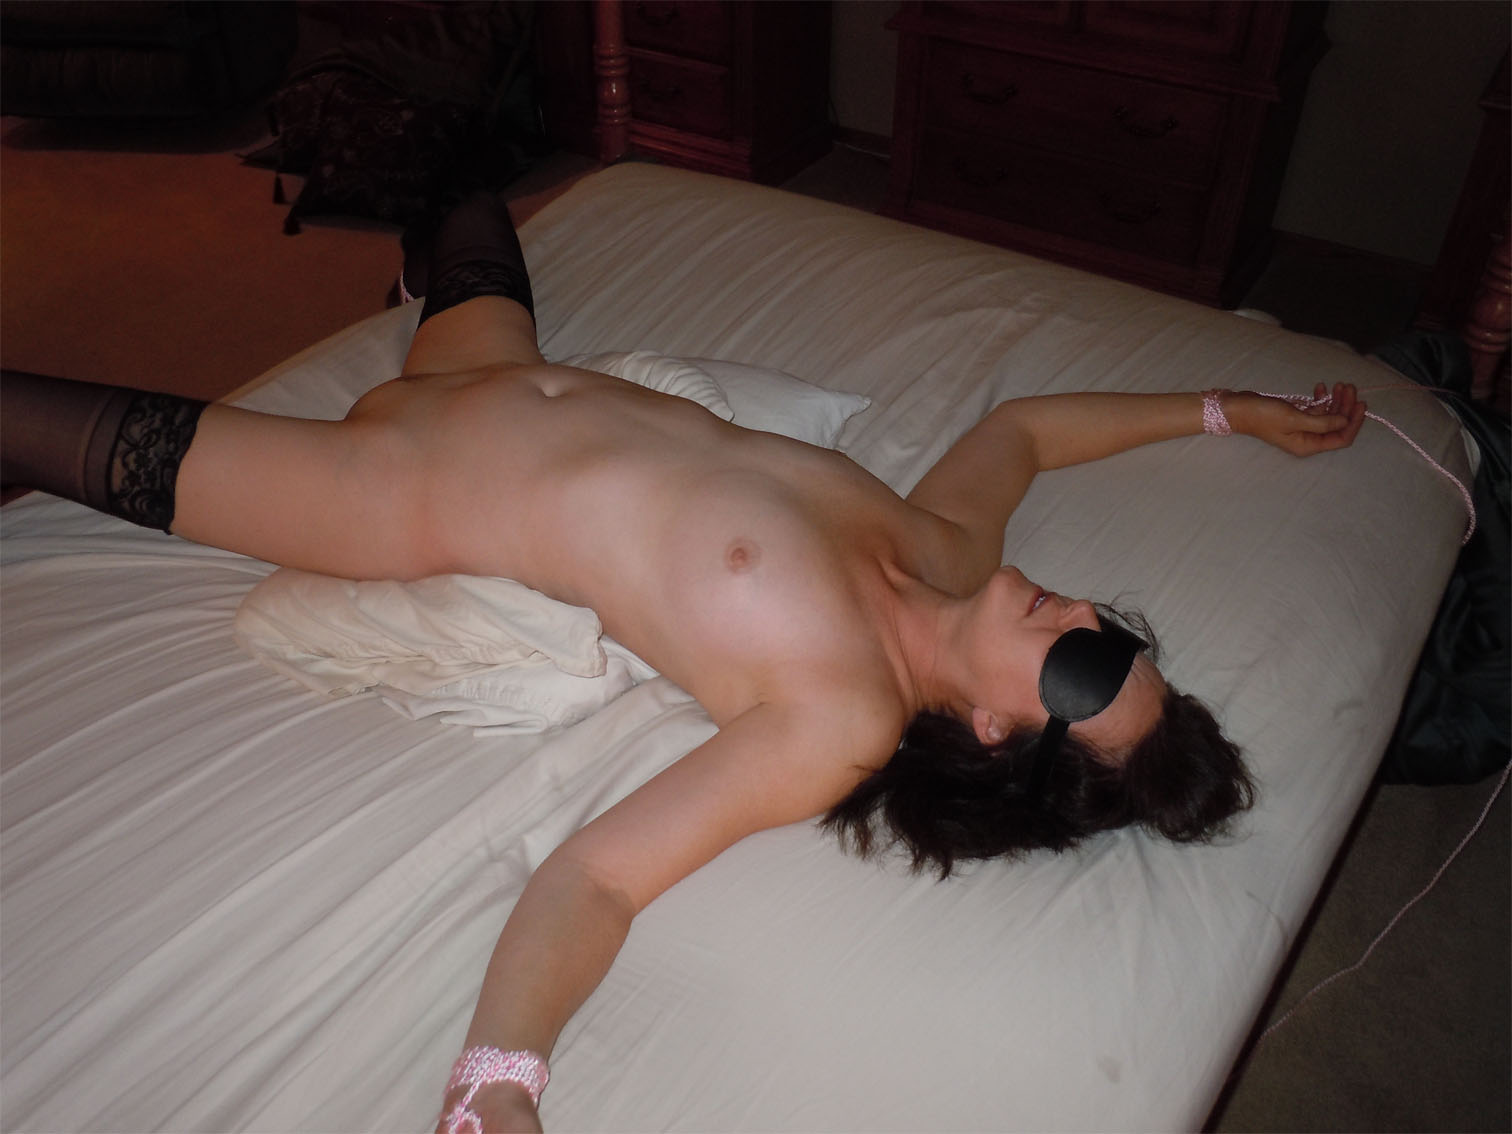 Amateur Shared Wife Free Porn Pics showing xxx images for real wife shared threesome xxx | www